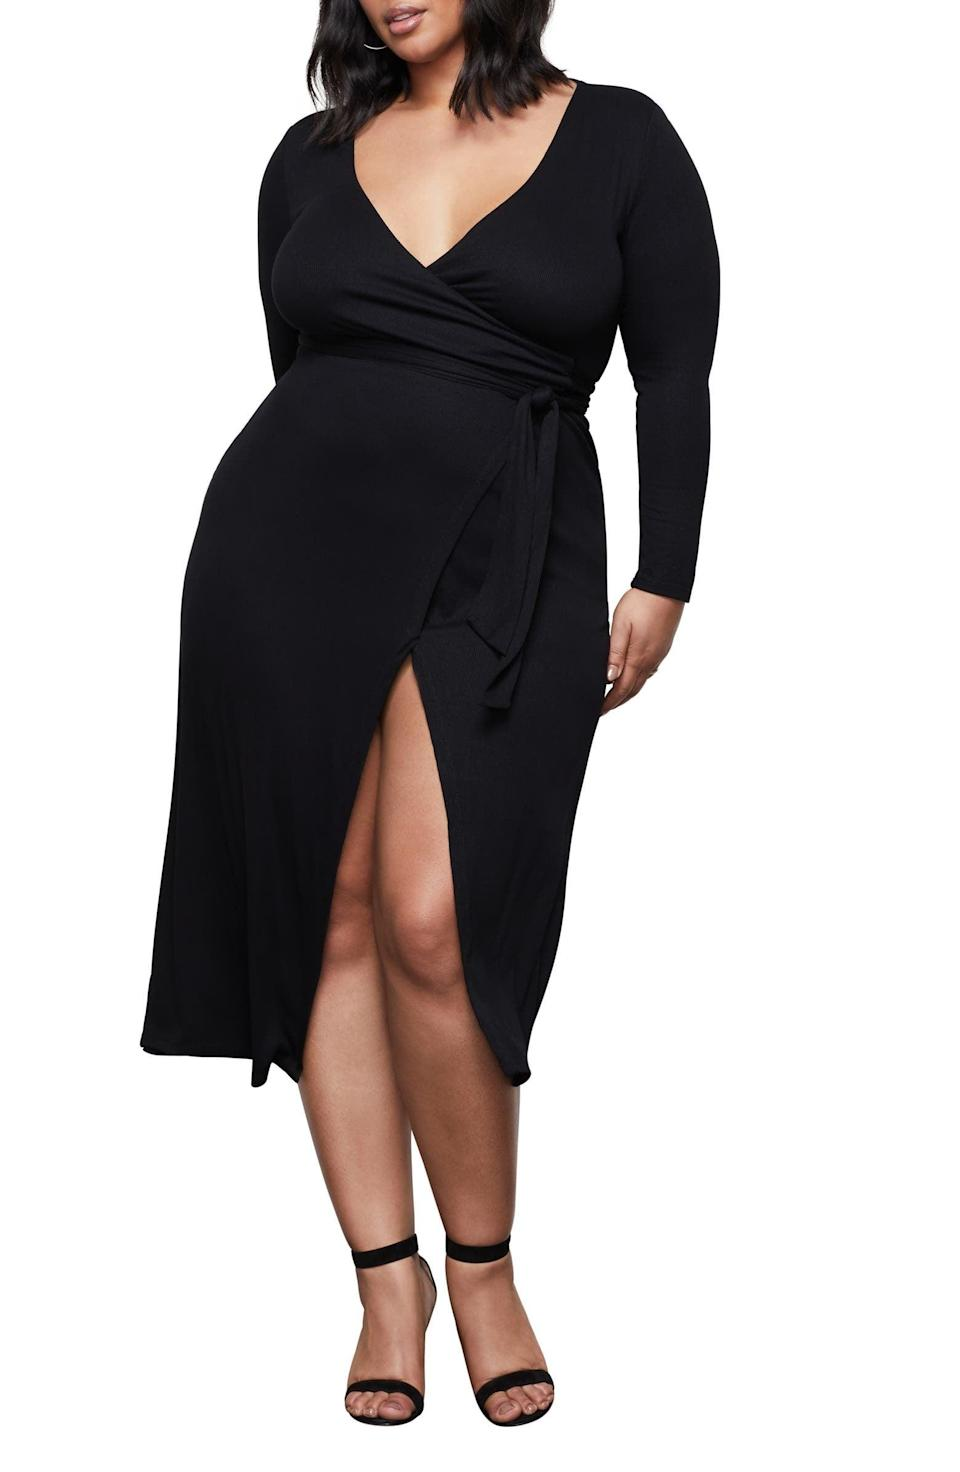 <p>You'll look and feel damn good in this sultry <span>Good American Solid Long Sleeve Wrap Midi Dress</span> ($71, originally $129).</p>